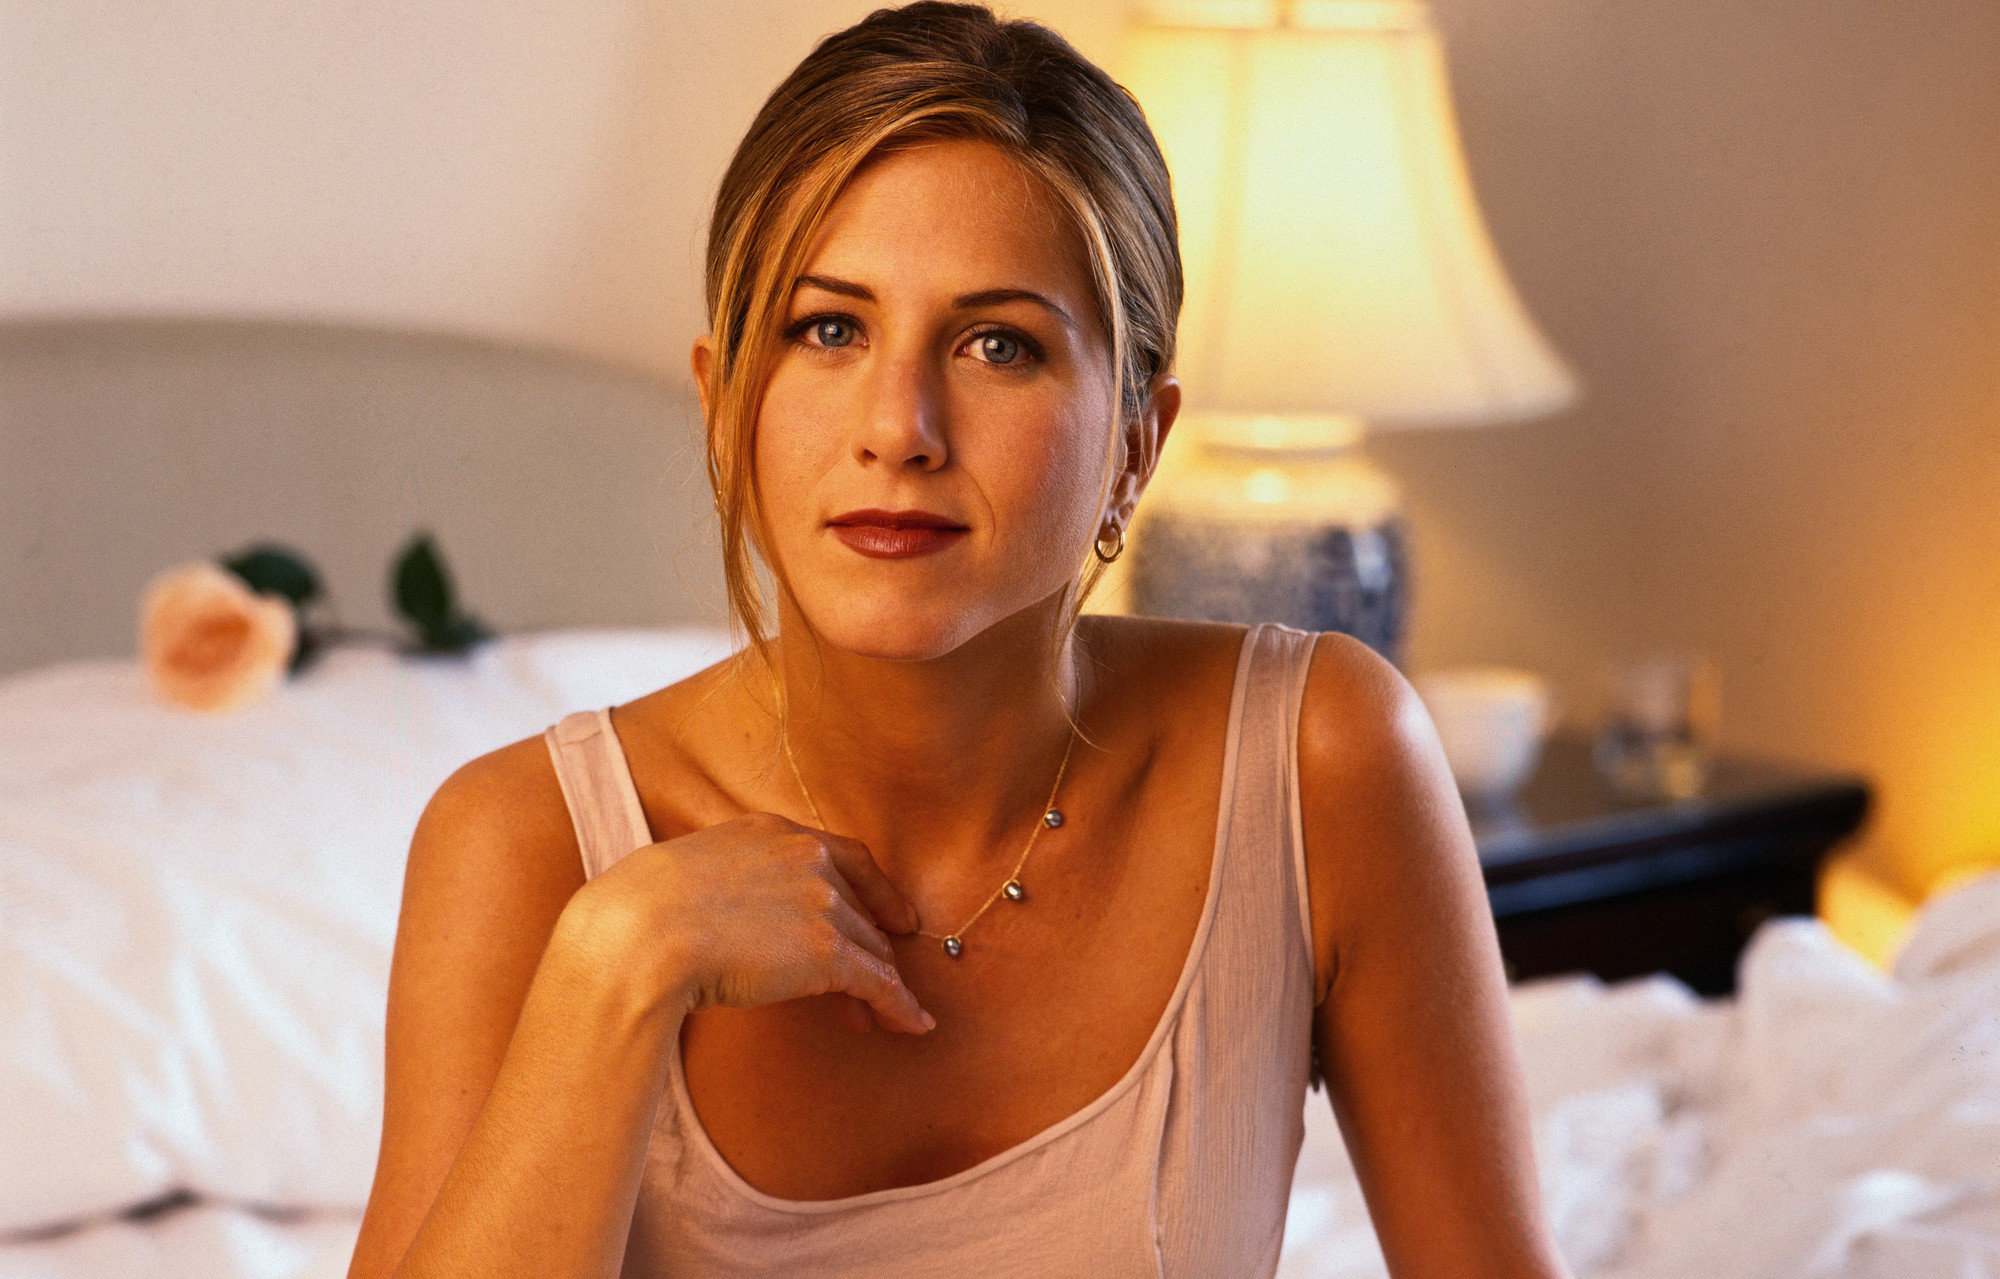 The Actress Playing Rachel Green